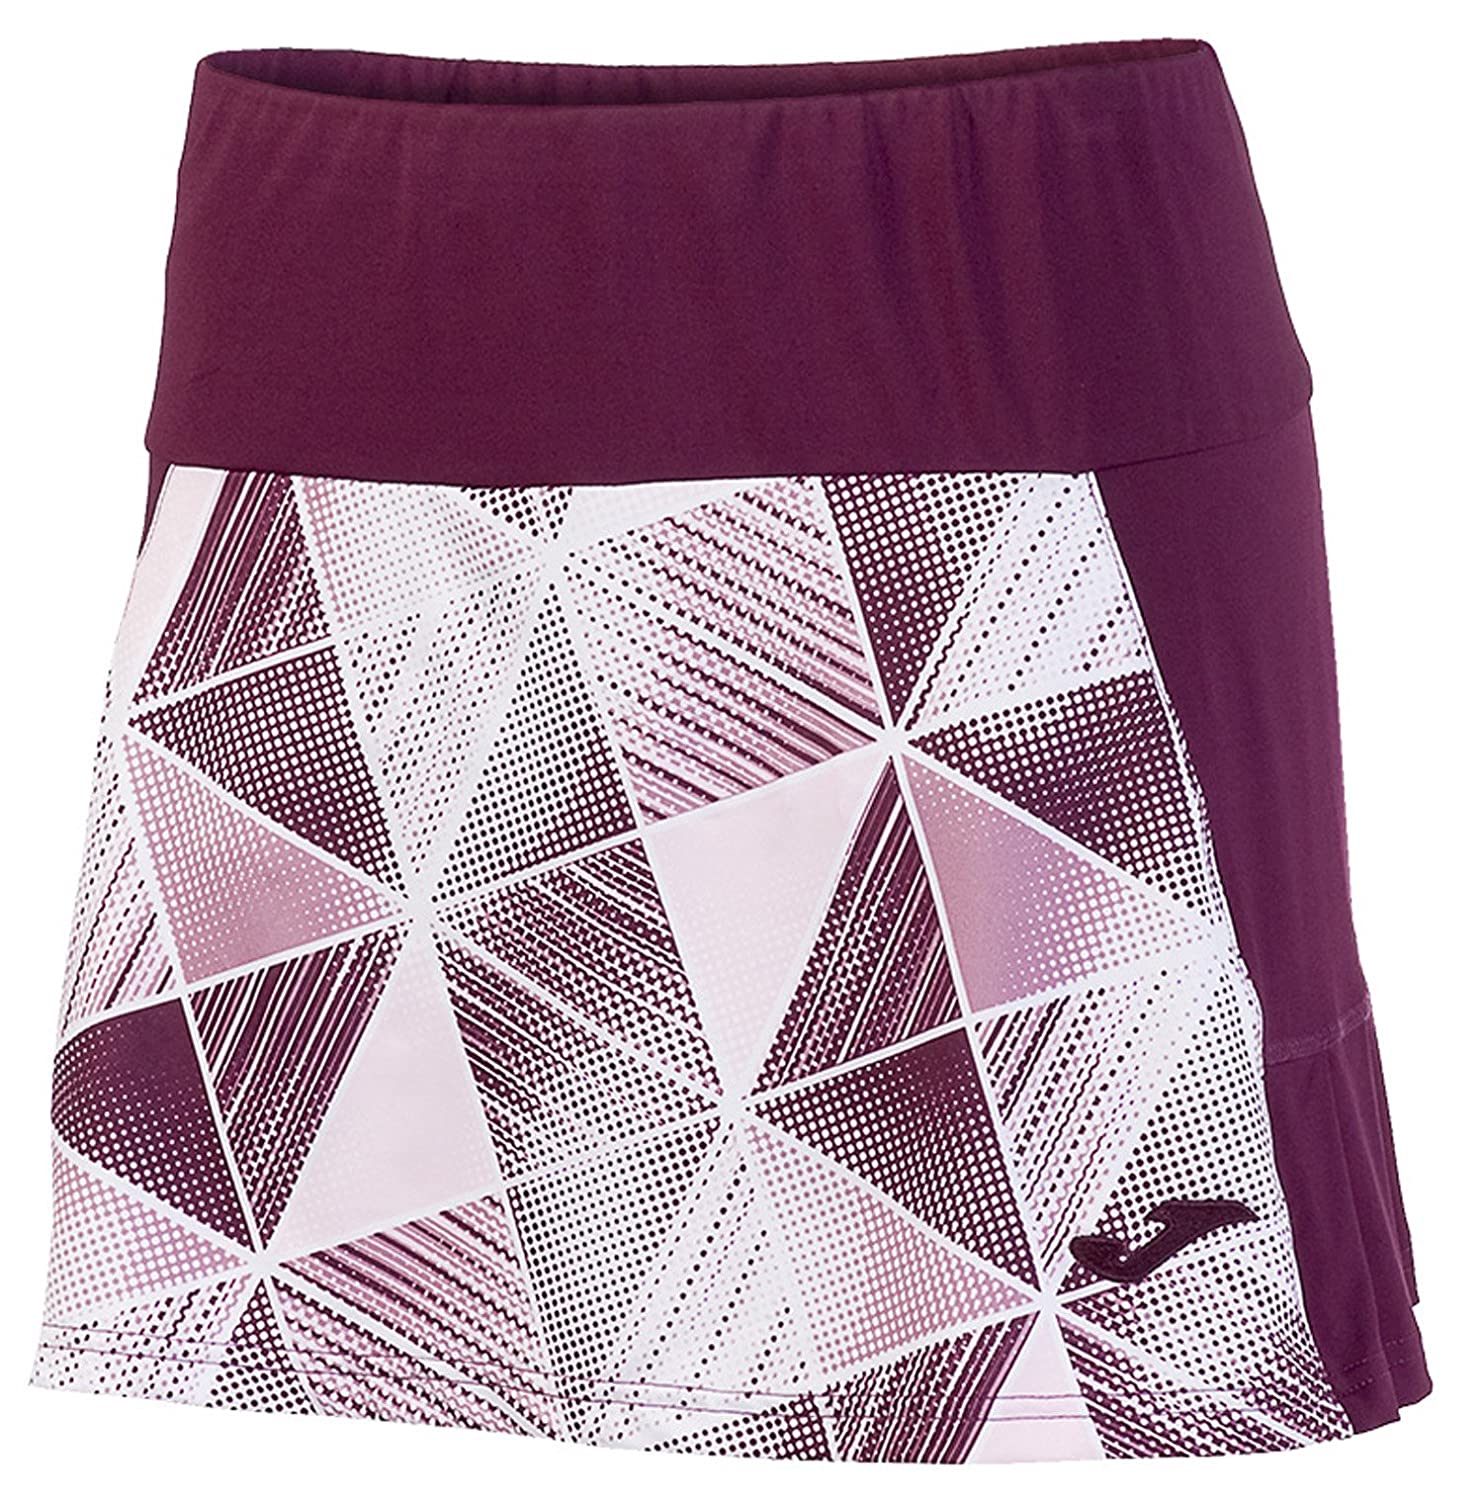 Joma Gravity Skirt Patterned Tenis Falda Mujer, Burdeos: Amazon.es ...